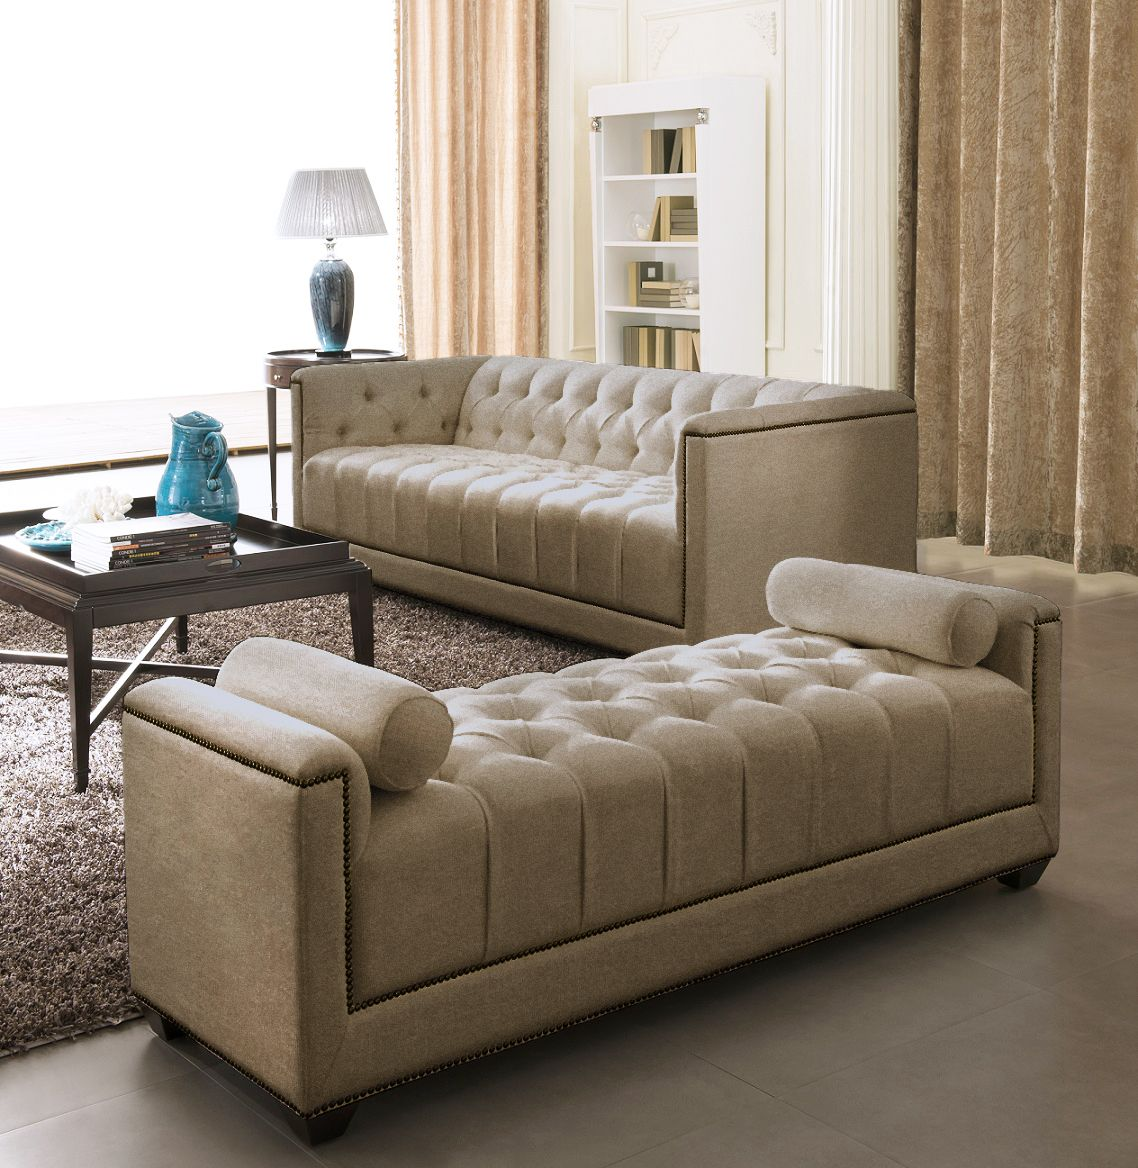 living room furniture modern design. modern sofa set designs for living room  Vijay Pinterest Sofa